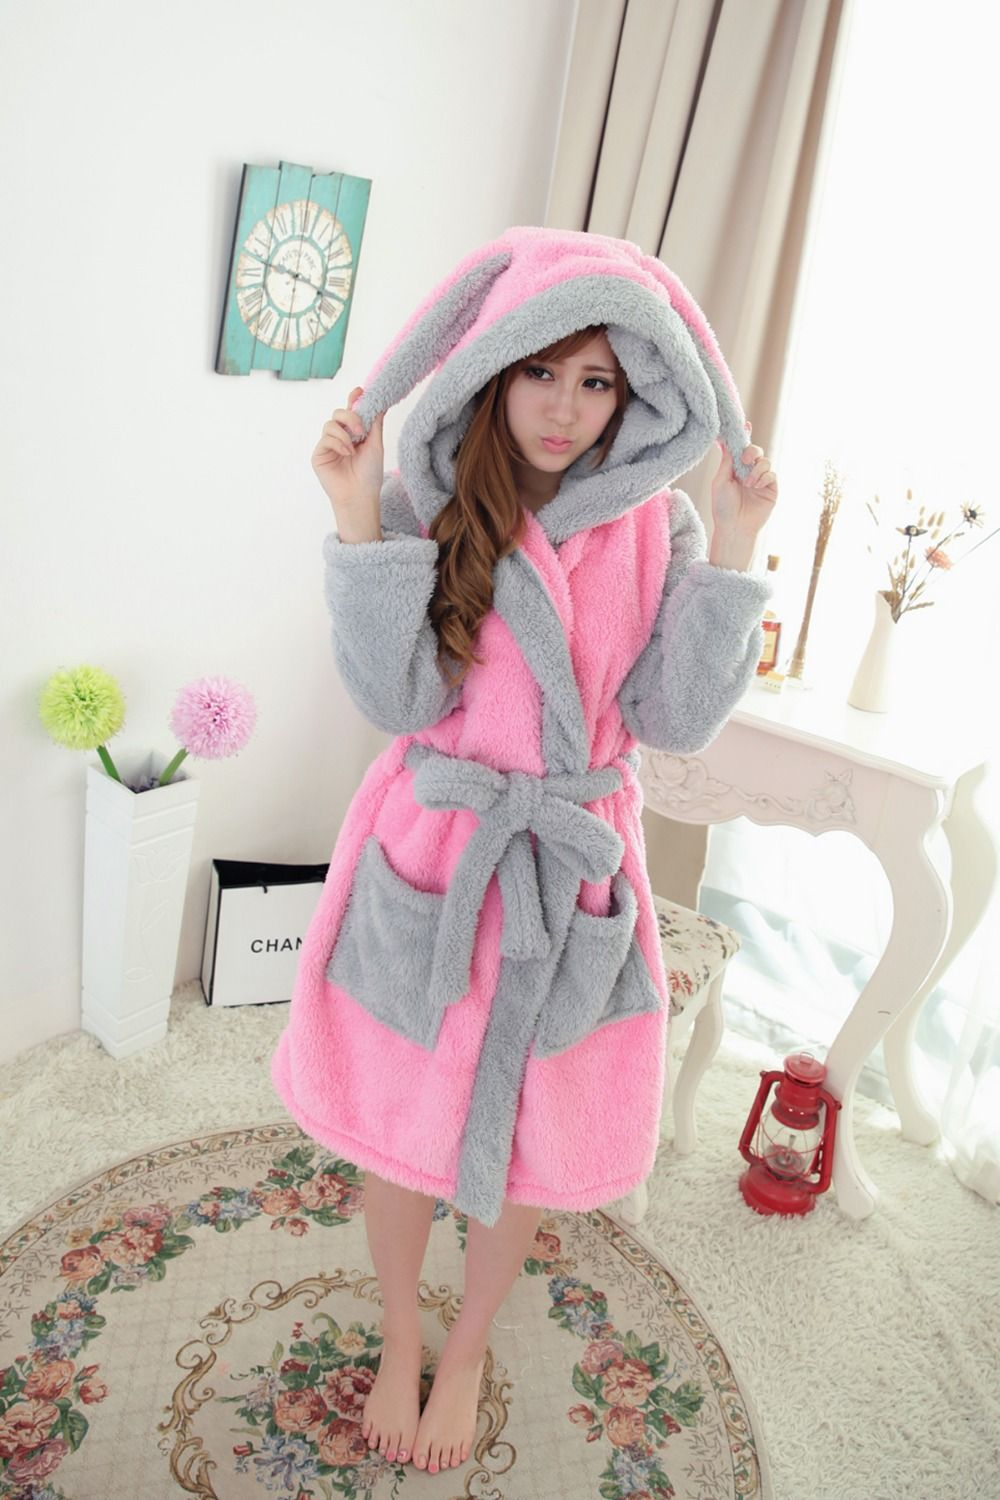 New plush robe 2015 Adult Animal Pink Rabbit Pajamas long sleeve lovely  Sleepwear bath robes dressing gowns for women bathrobe 027611d75